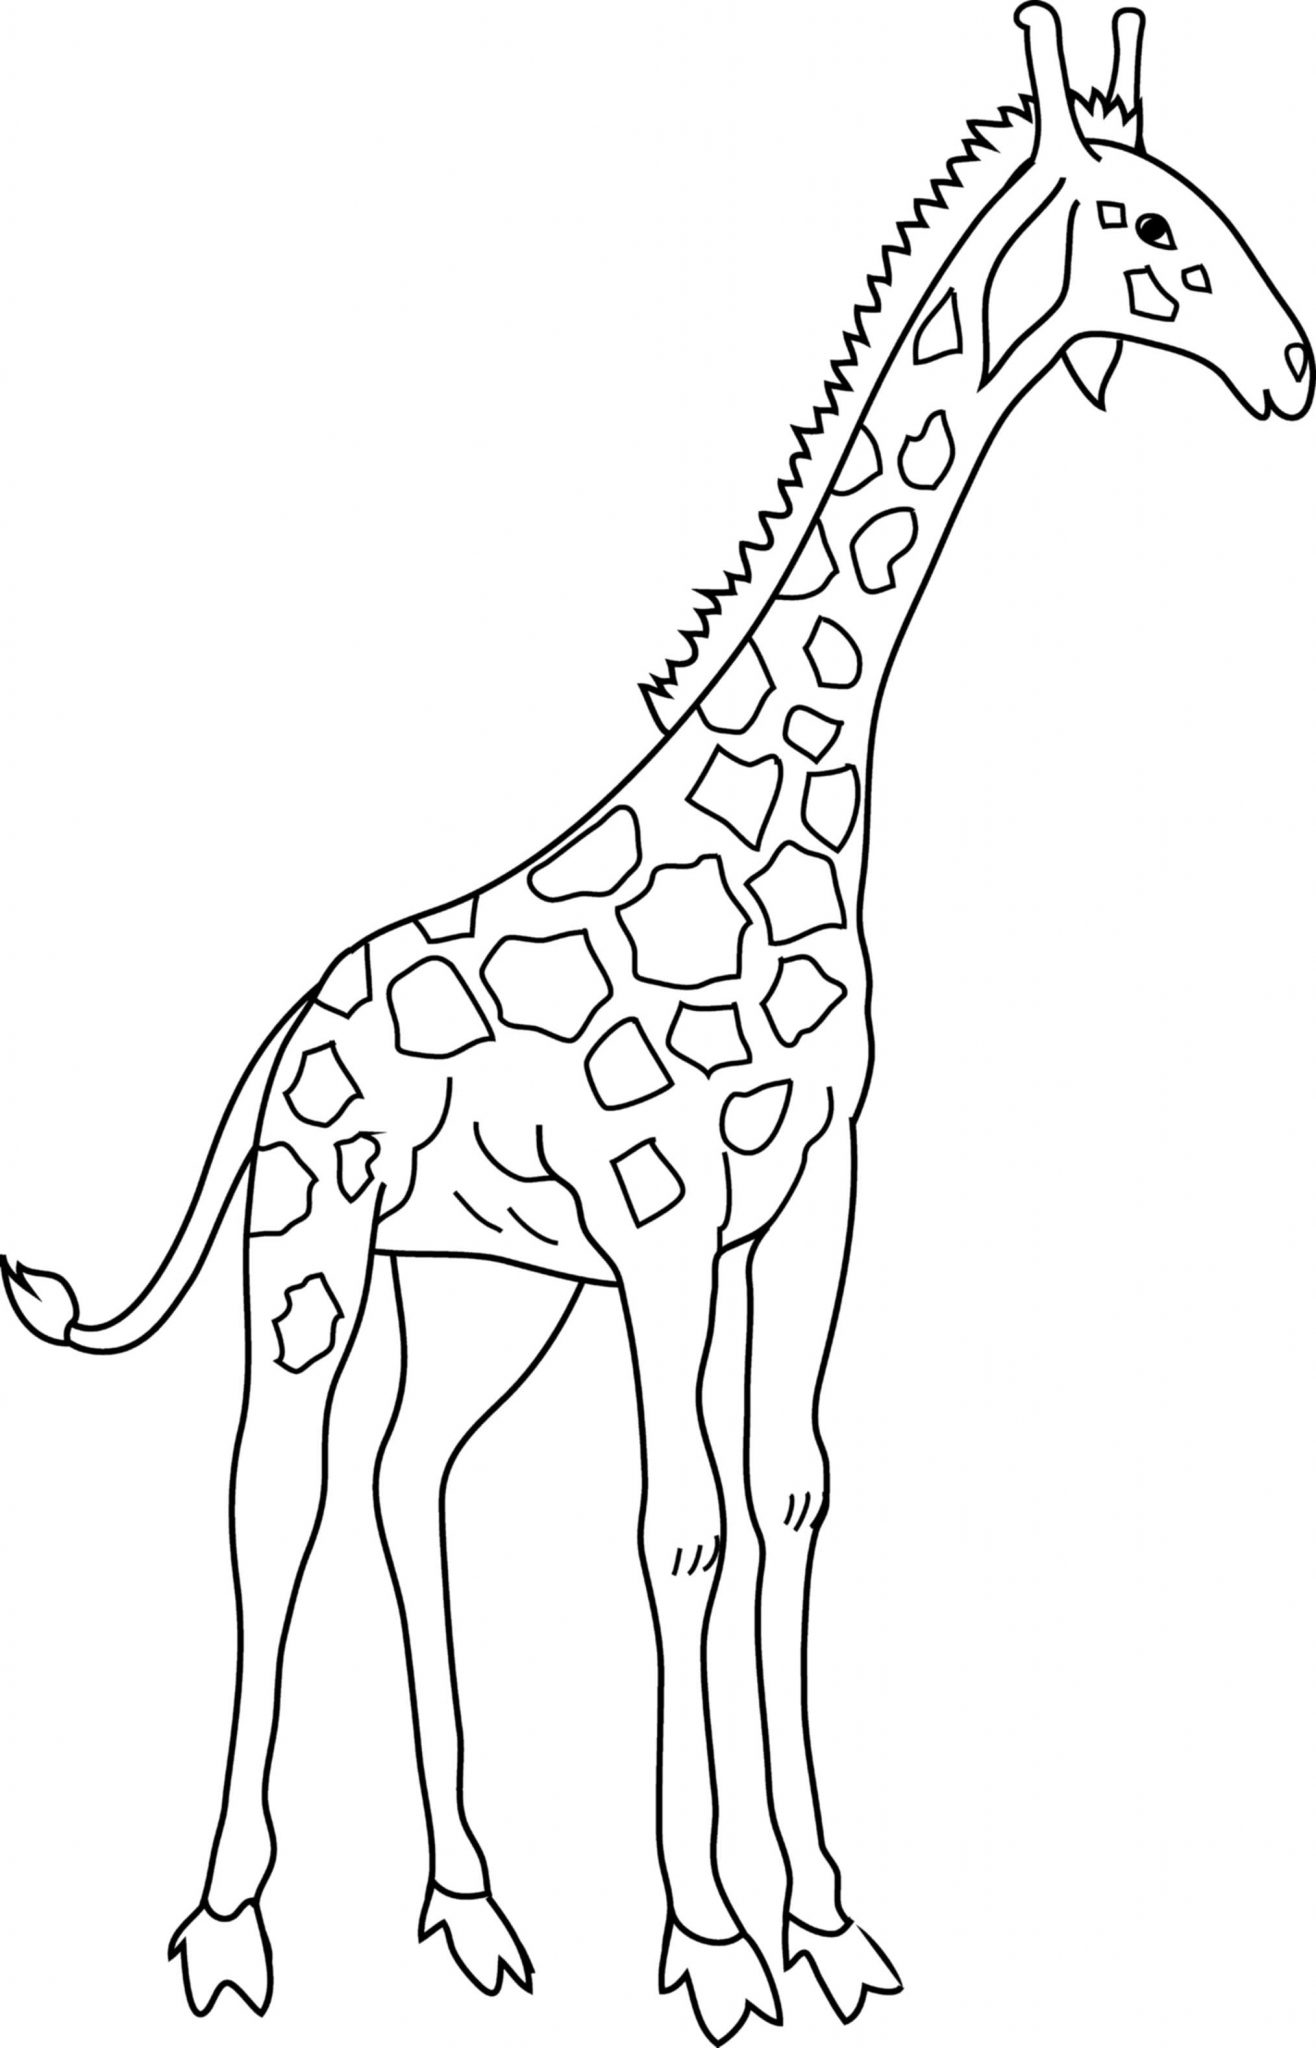 Giraffe Coloring Pages For Kids To Have Fun